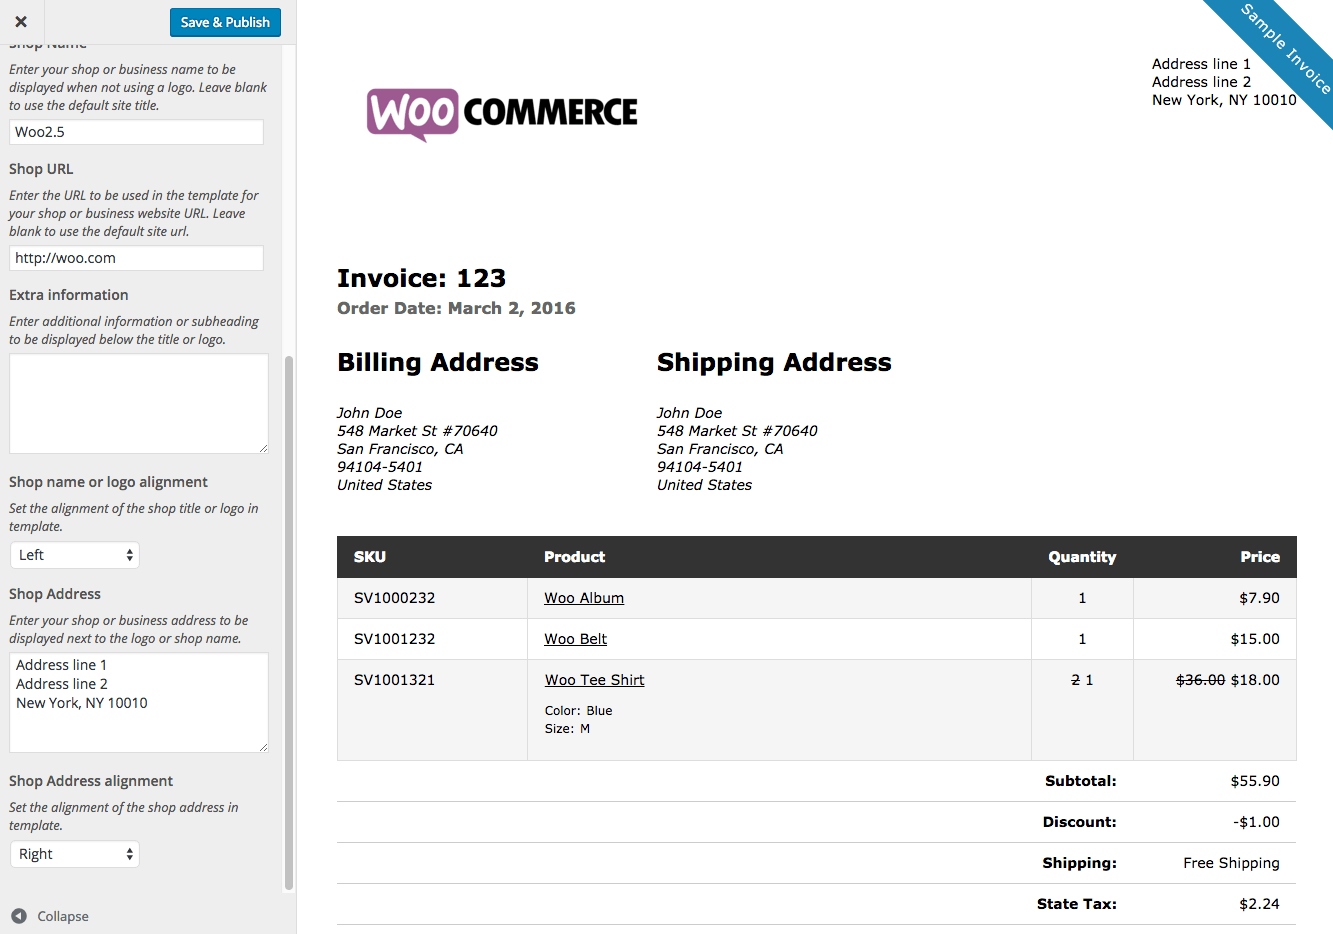 Reliefworkersus  Mesmerizing Woocommerce Print Invoices Amp Packing Lists  Woocommerce Docs With Heavenly Woocommerce Print Invoices  Packing Lists Customizer With Cool Graphic Design Invoice Template Also Invoice Journal In Addition Paypal Invoicing And Invoice Design As Well As Service Invoice Additionally Woocommerce Invoice From Docswoocommercecom With Reliefworkersus  Heavenly Woocommerce Print Invoices Amp Packing Lists  Woocommerce Docs With Cool Woocommerce Print Invoices  Packing Lists Customizer And Mesmerizing Graphic Design Invoice Template Also Invoice Journal In Addition Paypal Invoicing From Docswoocommercecom